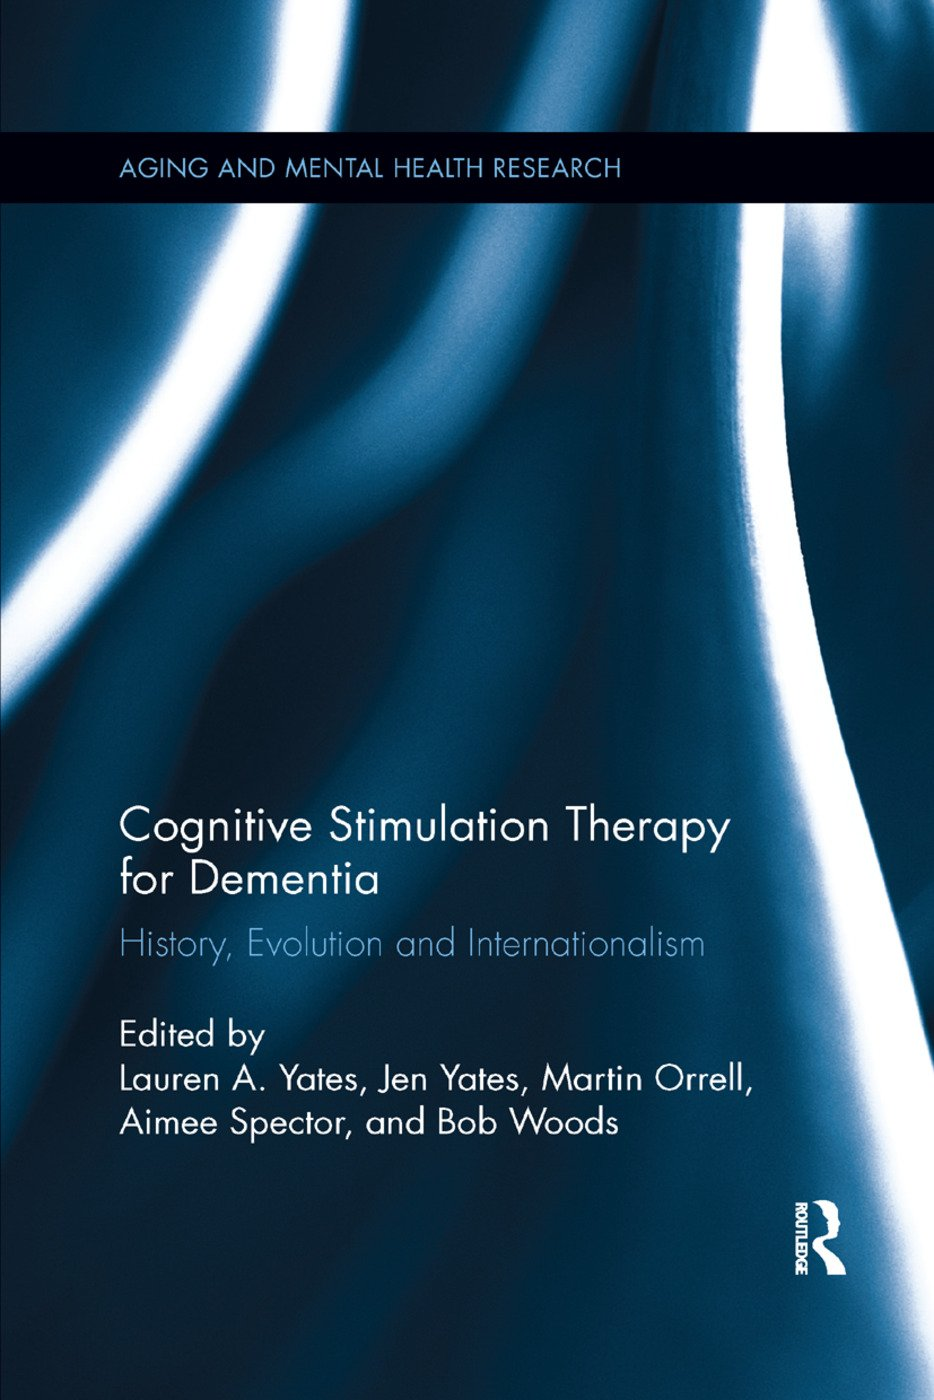 Cognitive Stimulation Therapy for Dementia: History, Evolution and Internationalism book cover